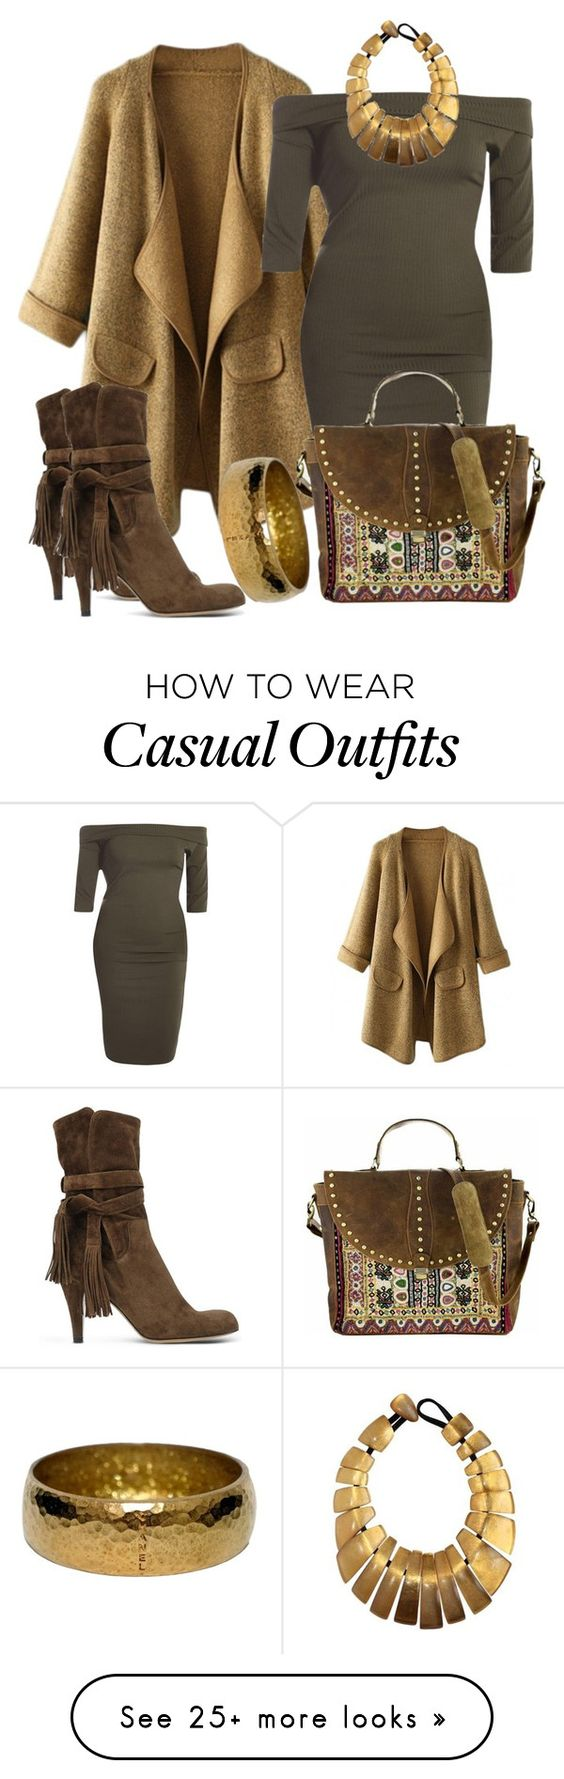 """""""casual"""" by alice-fortuna on Polyvore featuring Vintage Addiction, Chloé, Chanel, Monies, women's clothing, women's fashion, women, female, woman and misses"""